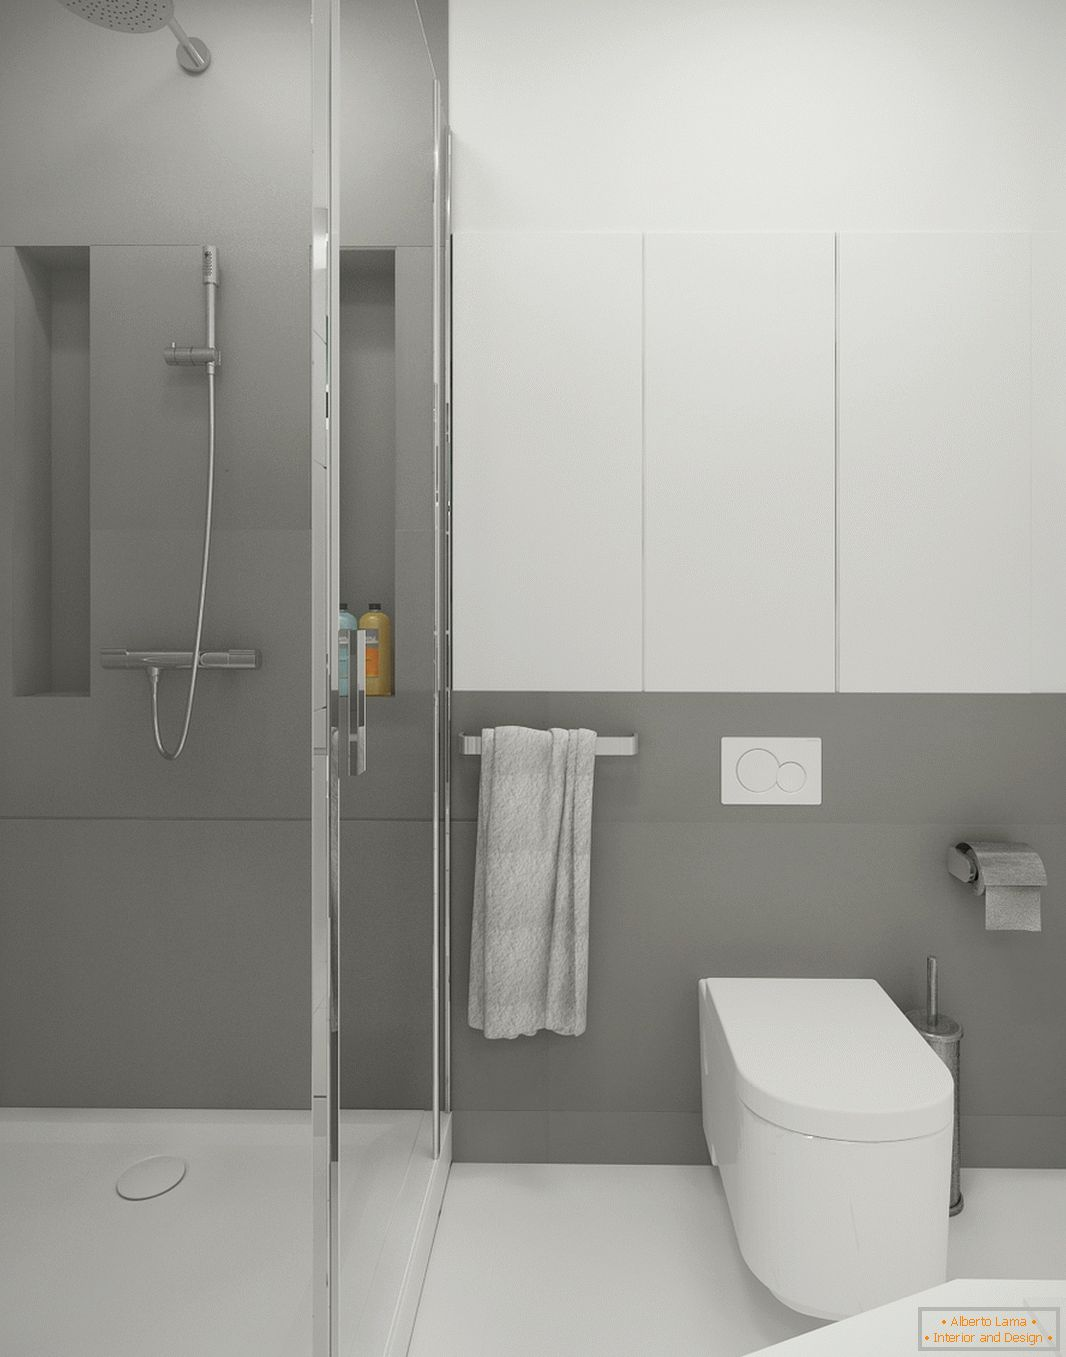 Bathroom in white-gray color